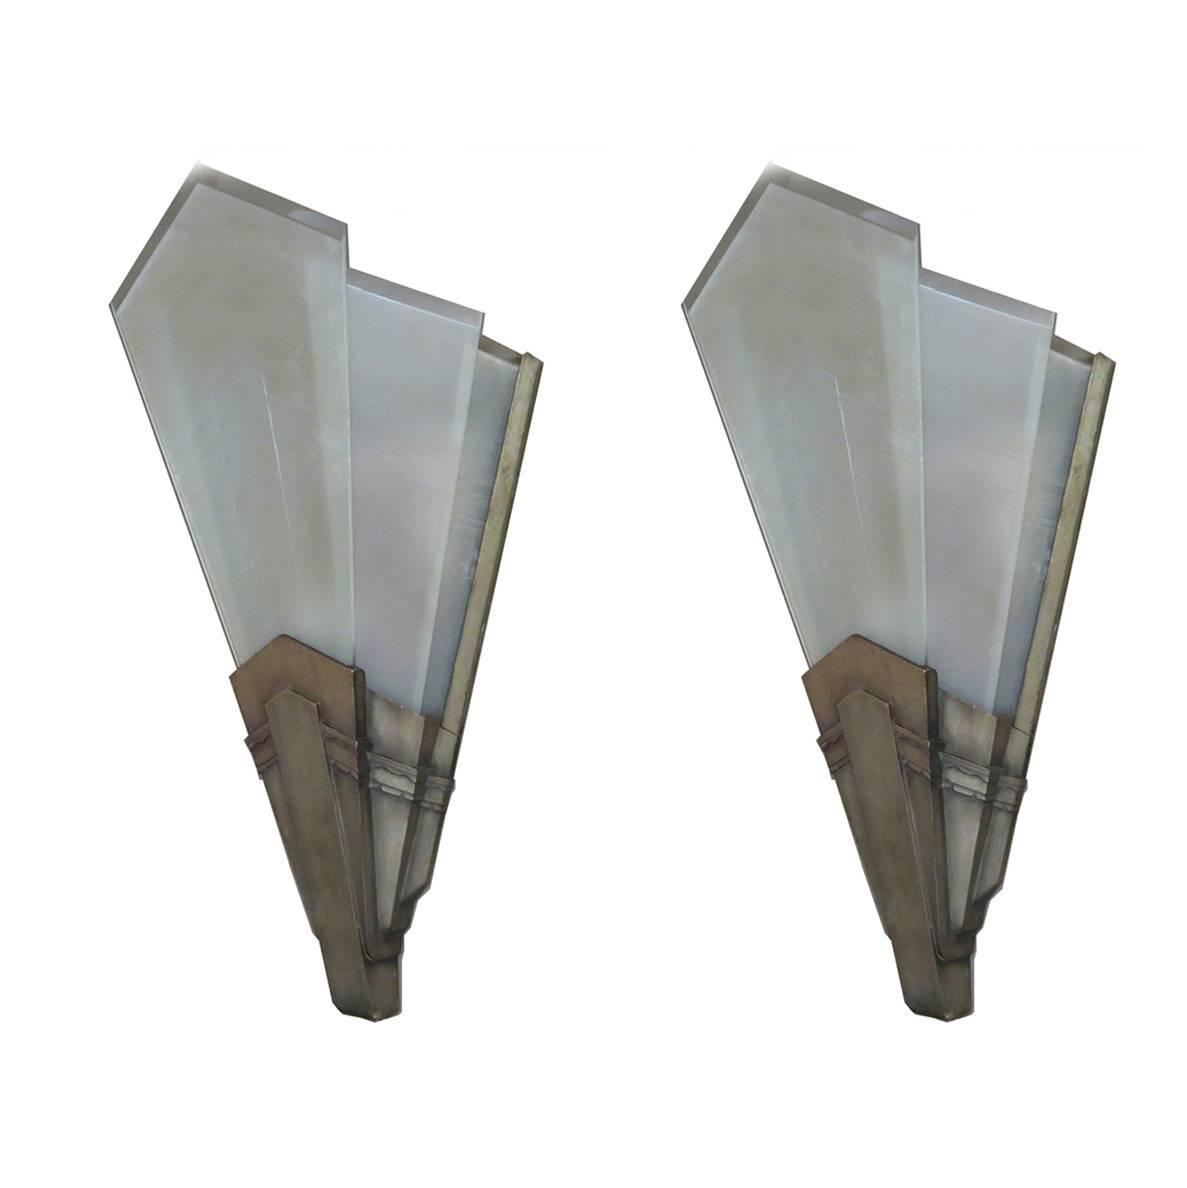 Impressive Silvered Bronze Art Deco Wall Sconces at 1stdibs